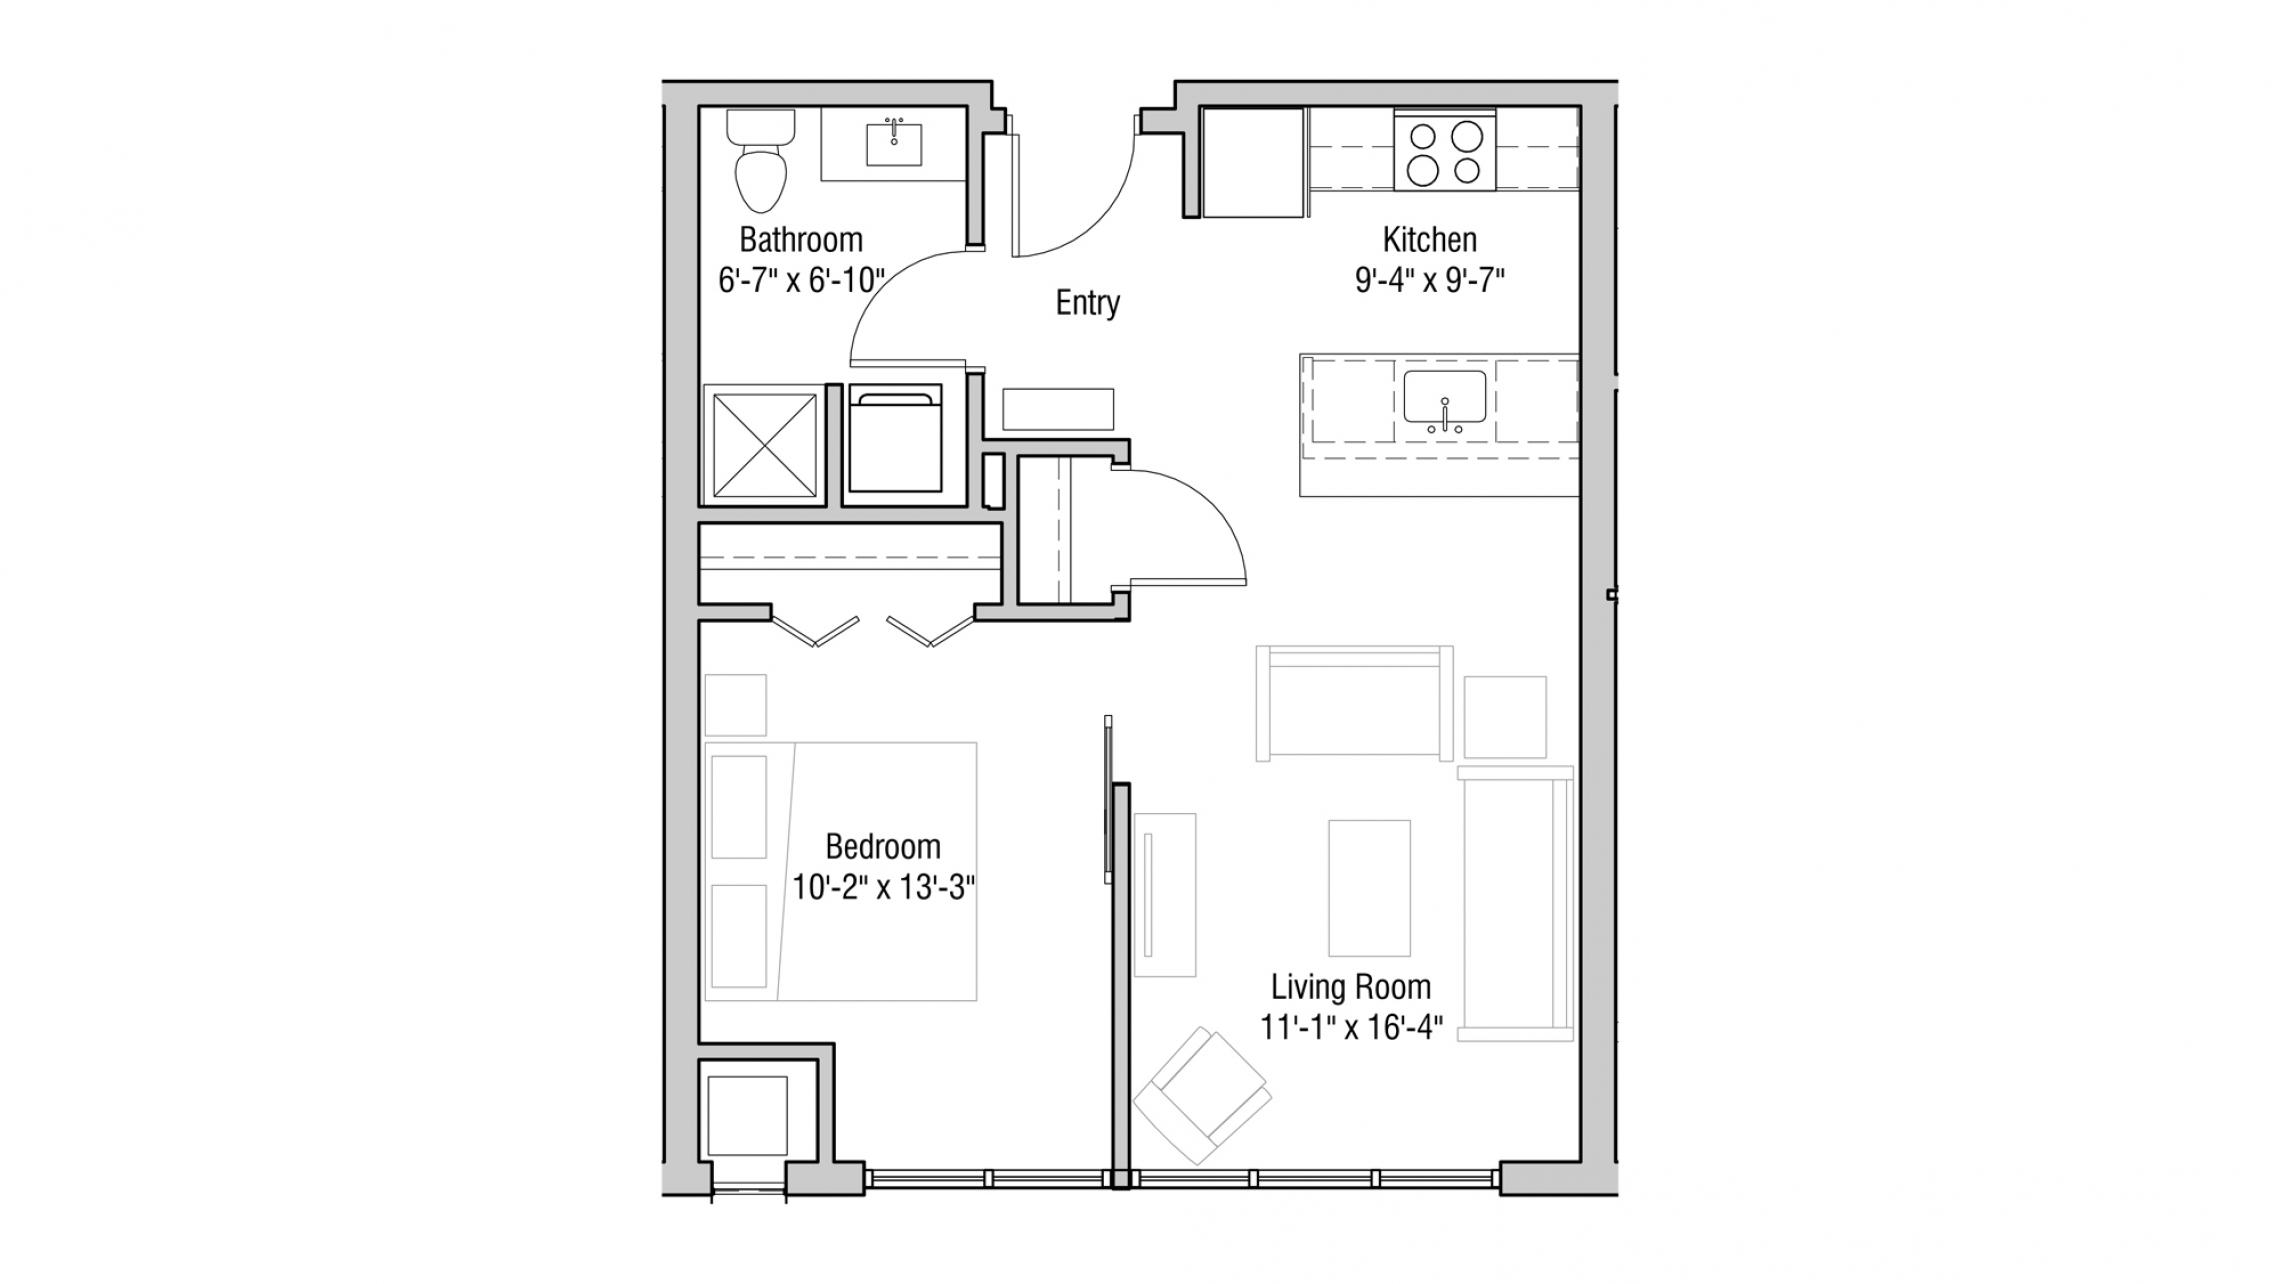 ULI Quarter Row 311 - One Bedroom, One Bathroom